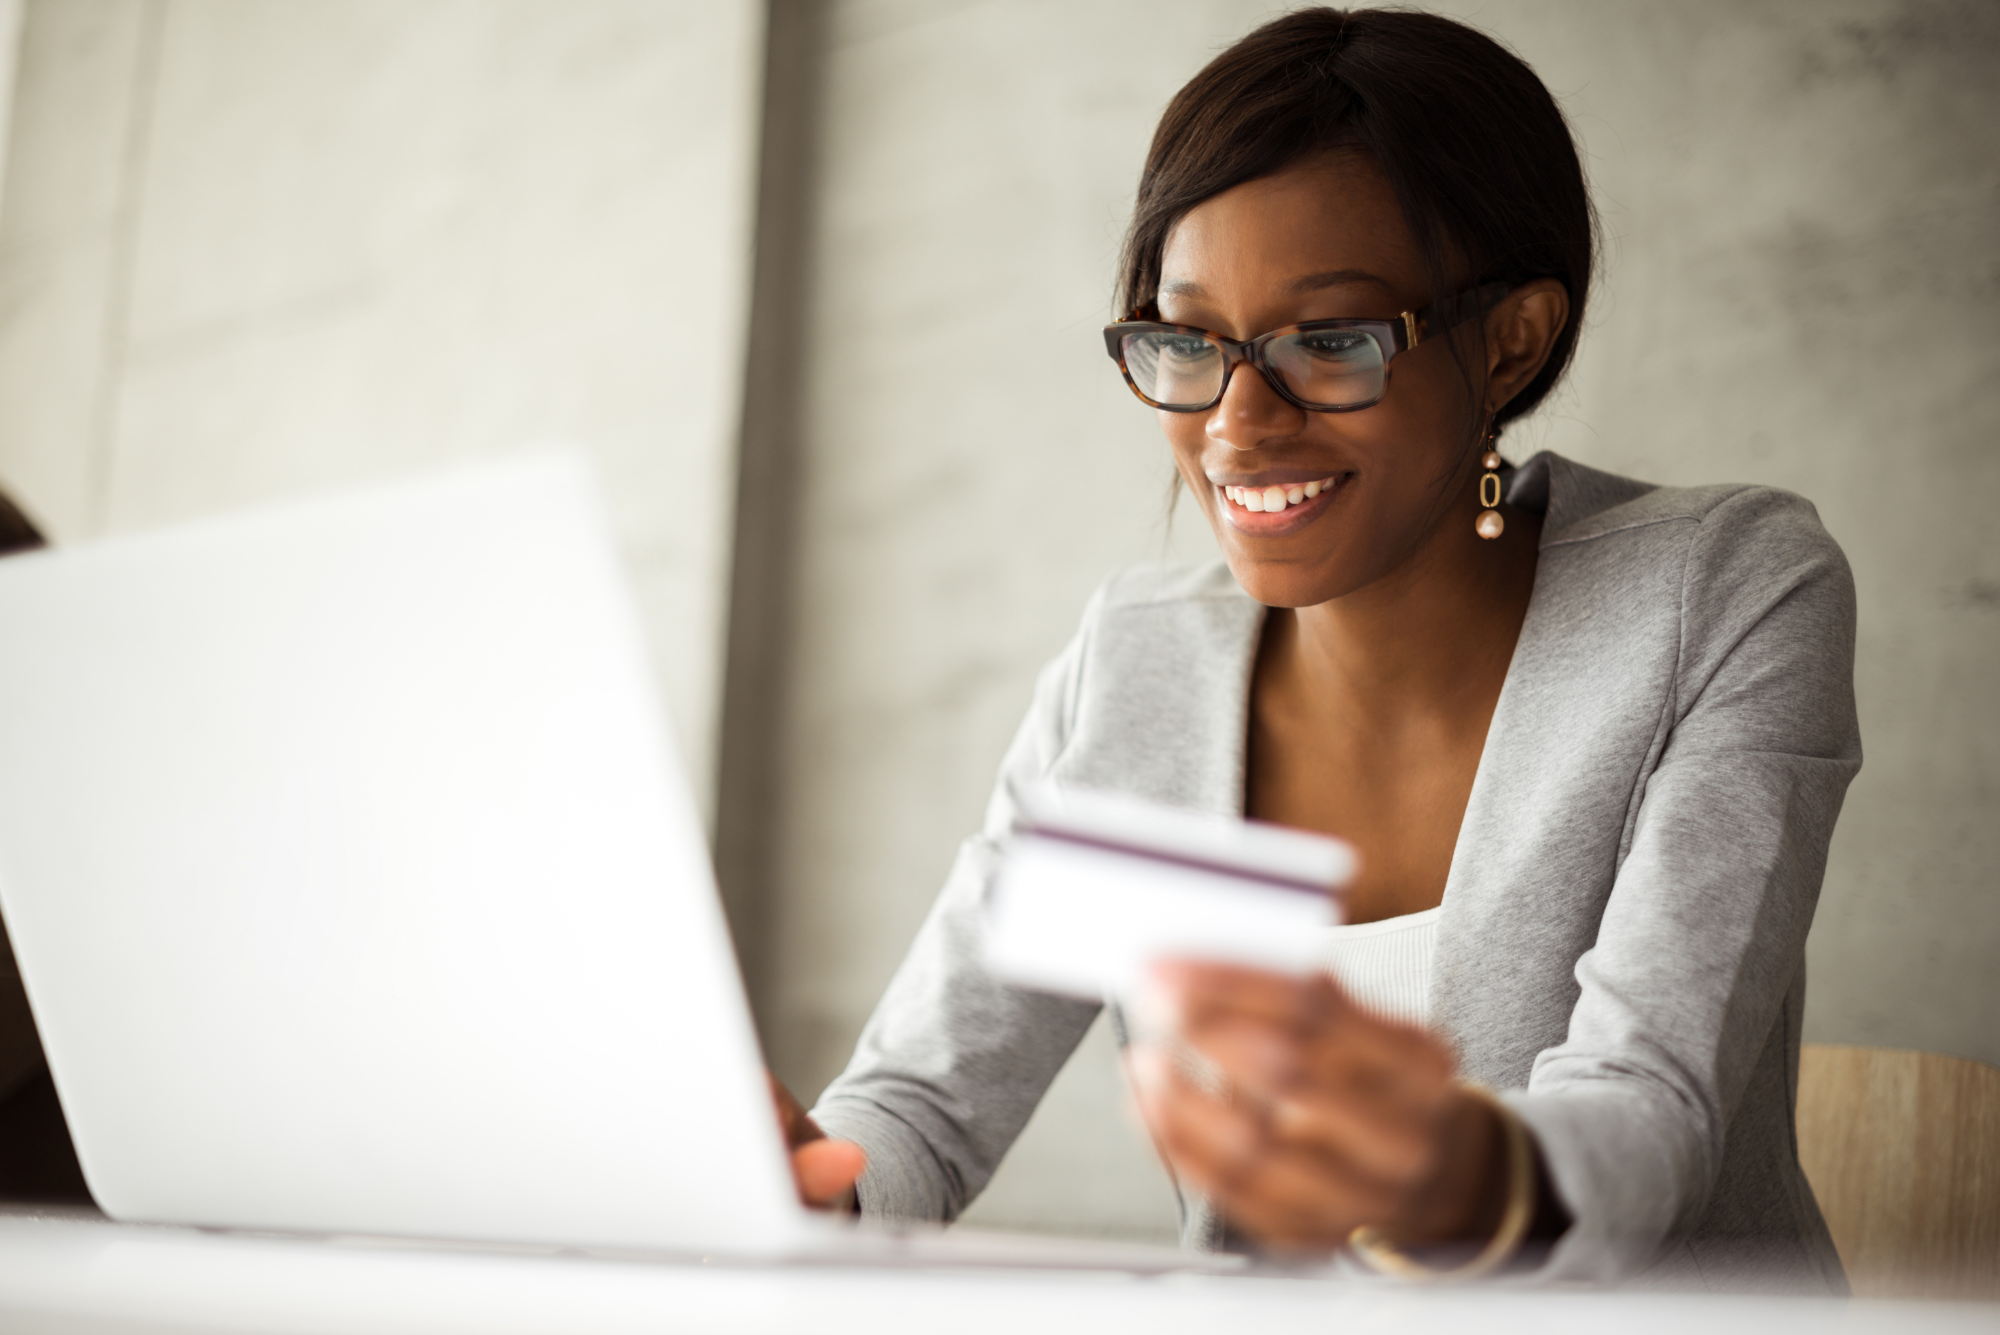 Self-Serve Checkout is the Game Changer B2B E-Commerce Has Been Waiting For